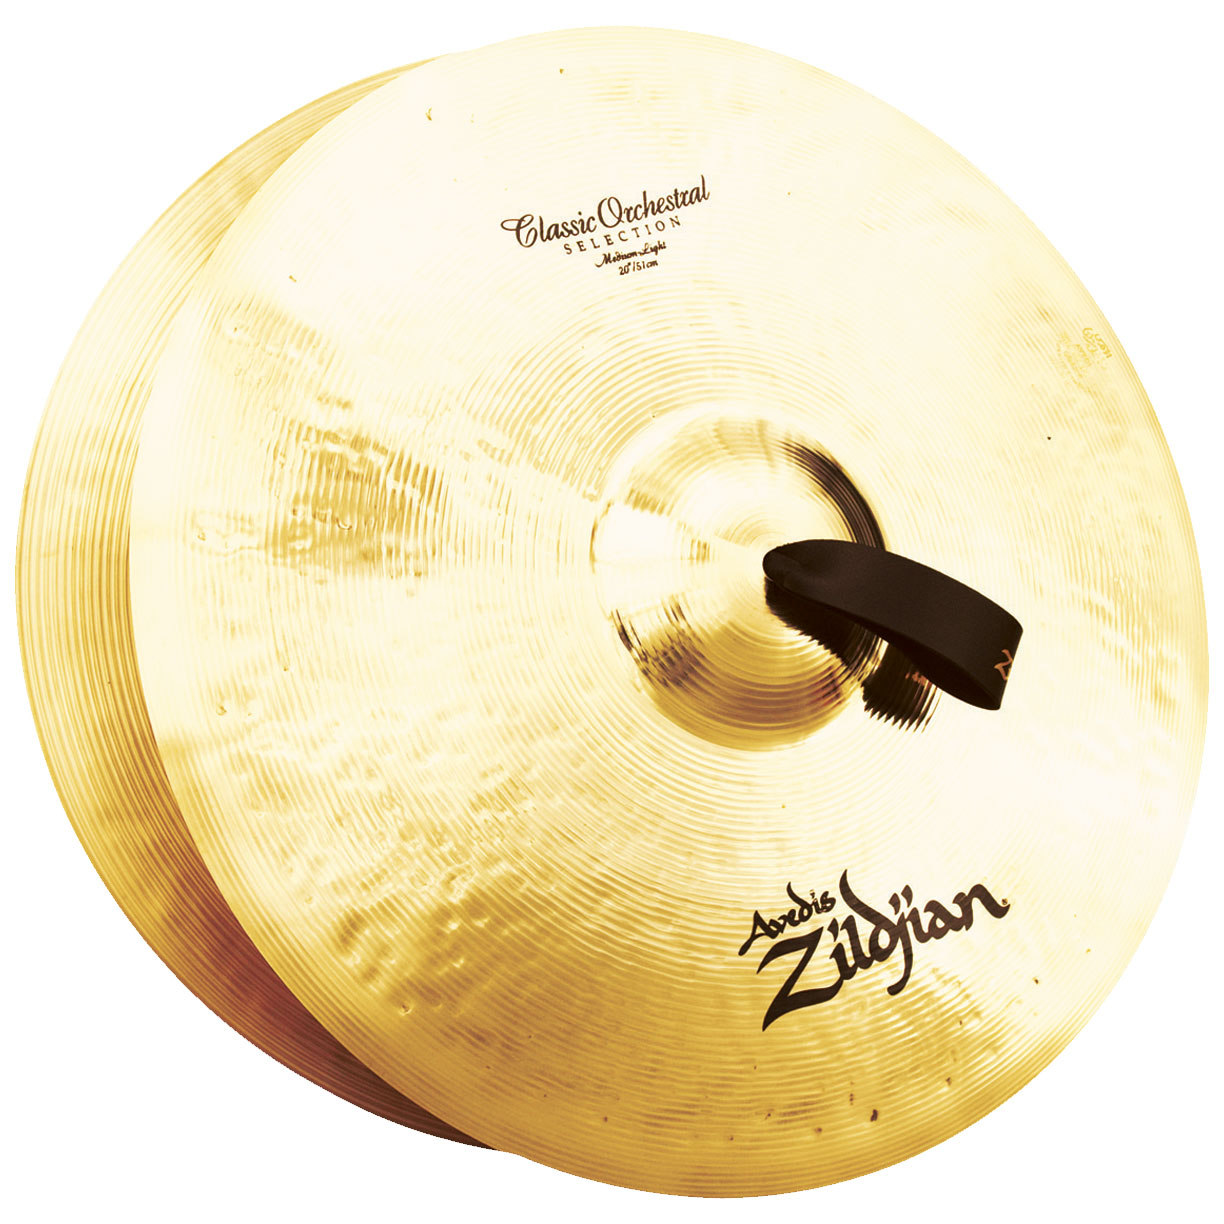 "Zildjian 20"" Classic Orchestral Medium-Light Crash Cymbal Pair"